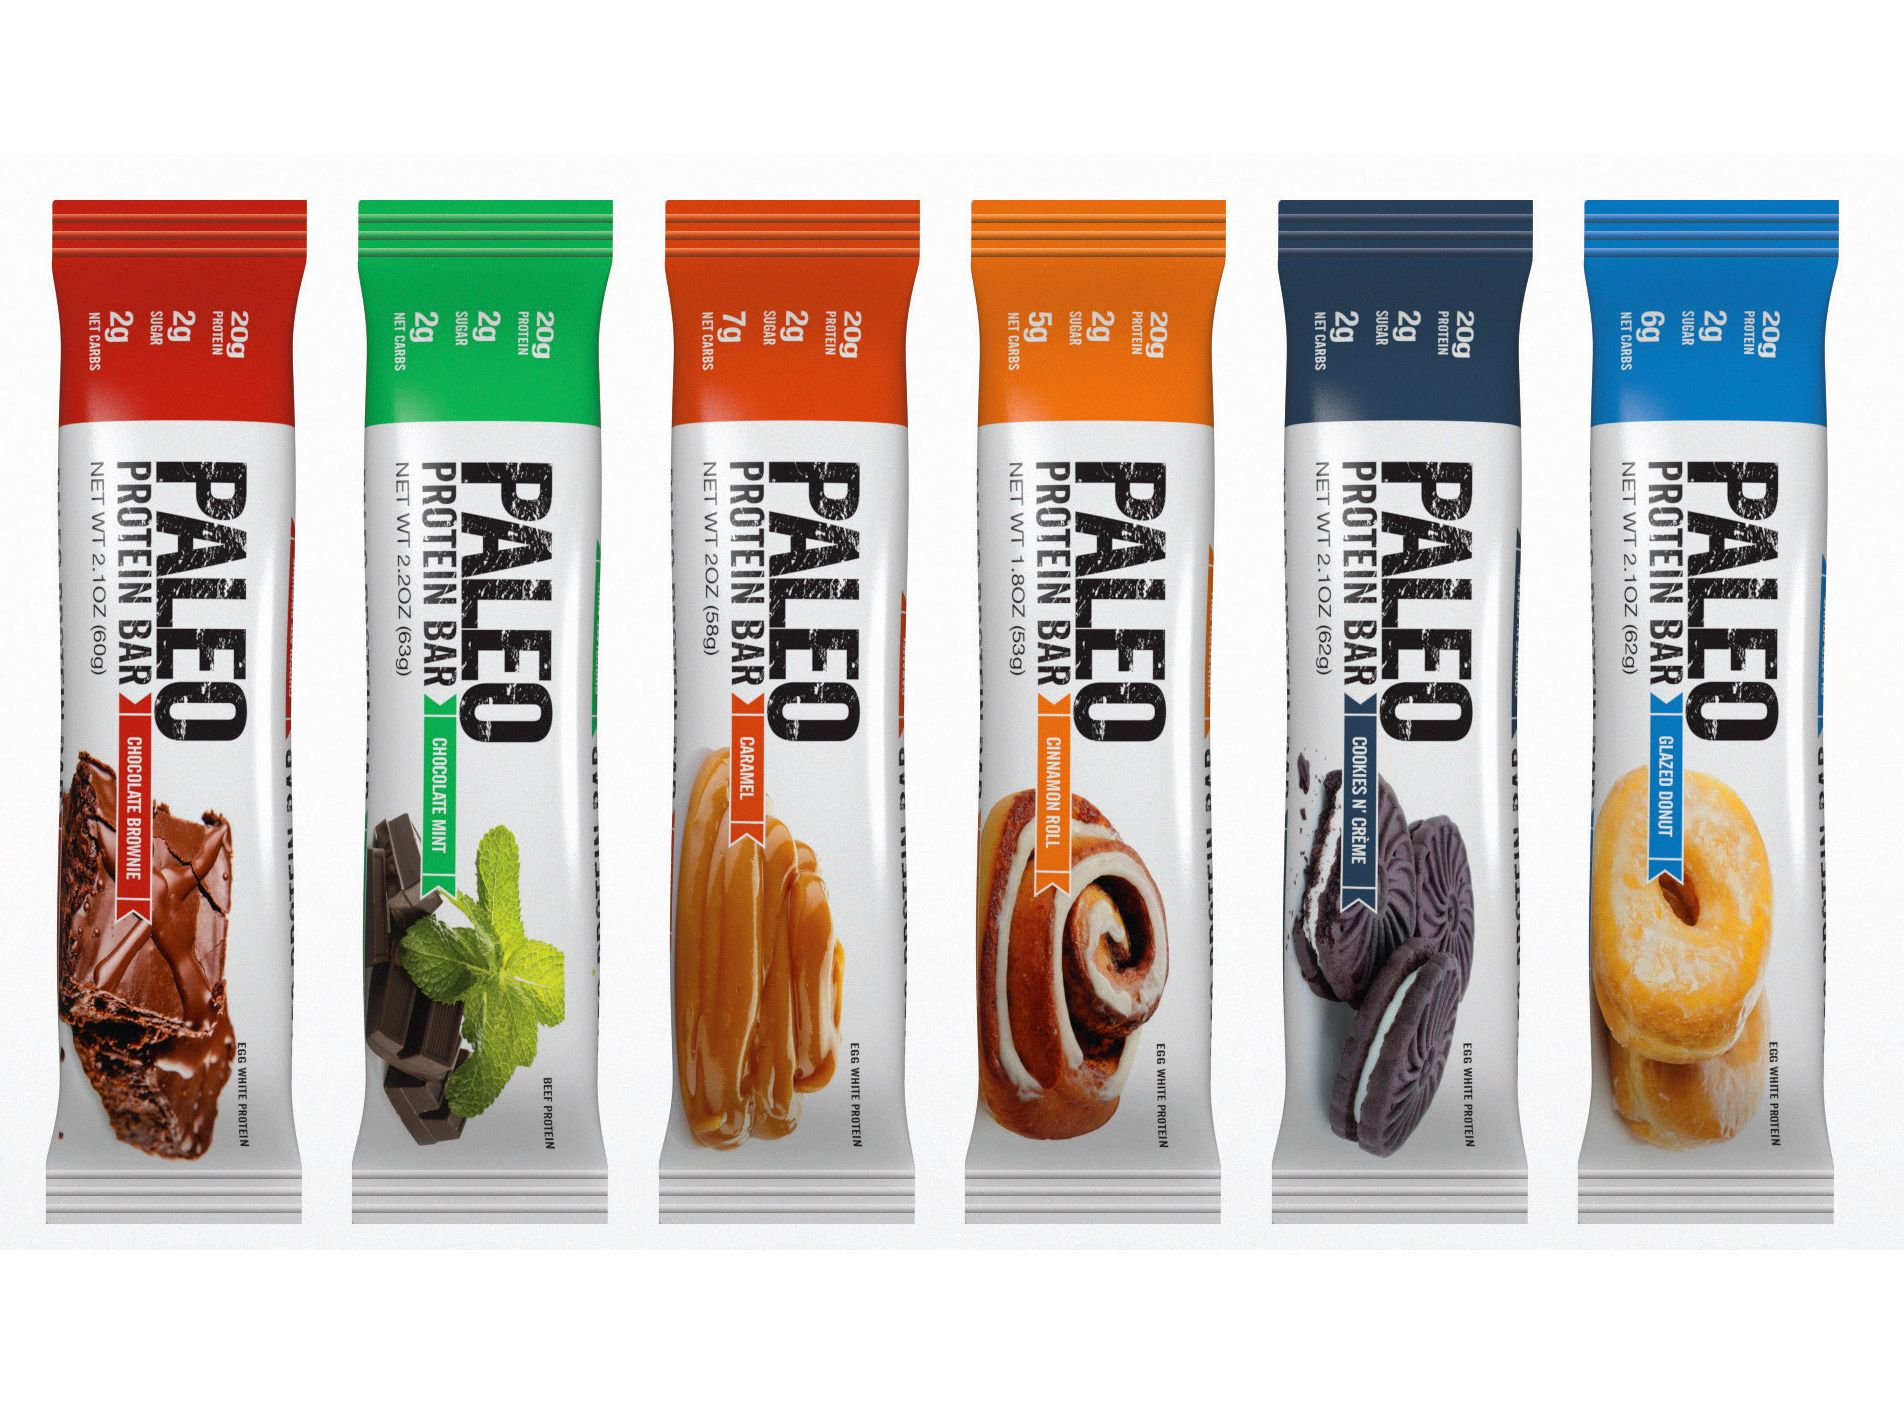 Paleo Protein Bars™ have 20g Protein (Egg Whites), Low